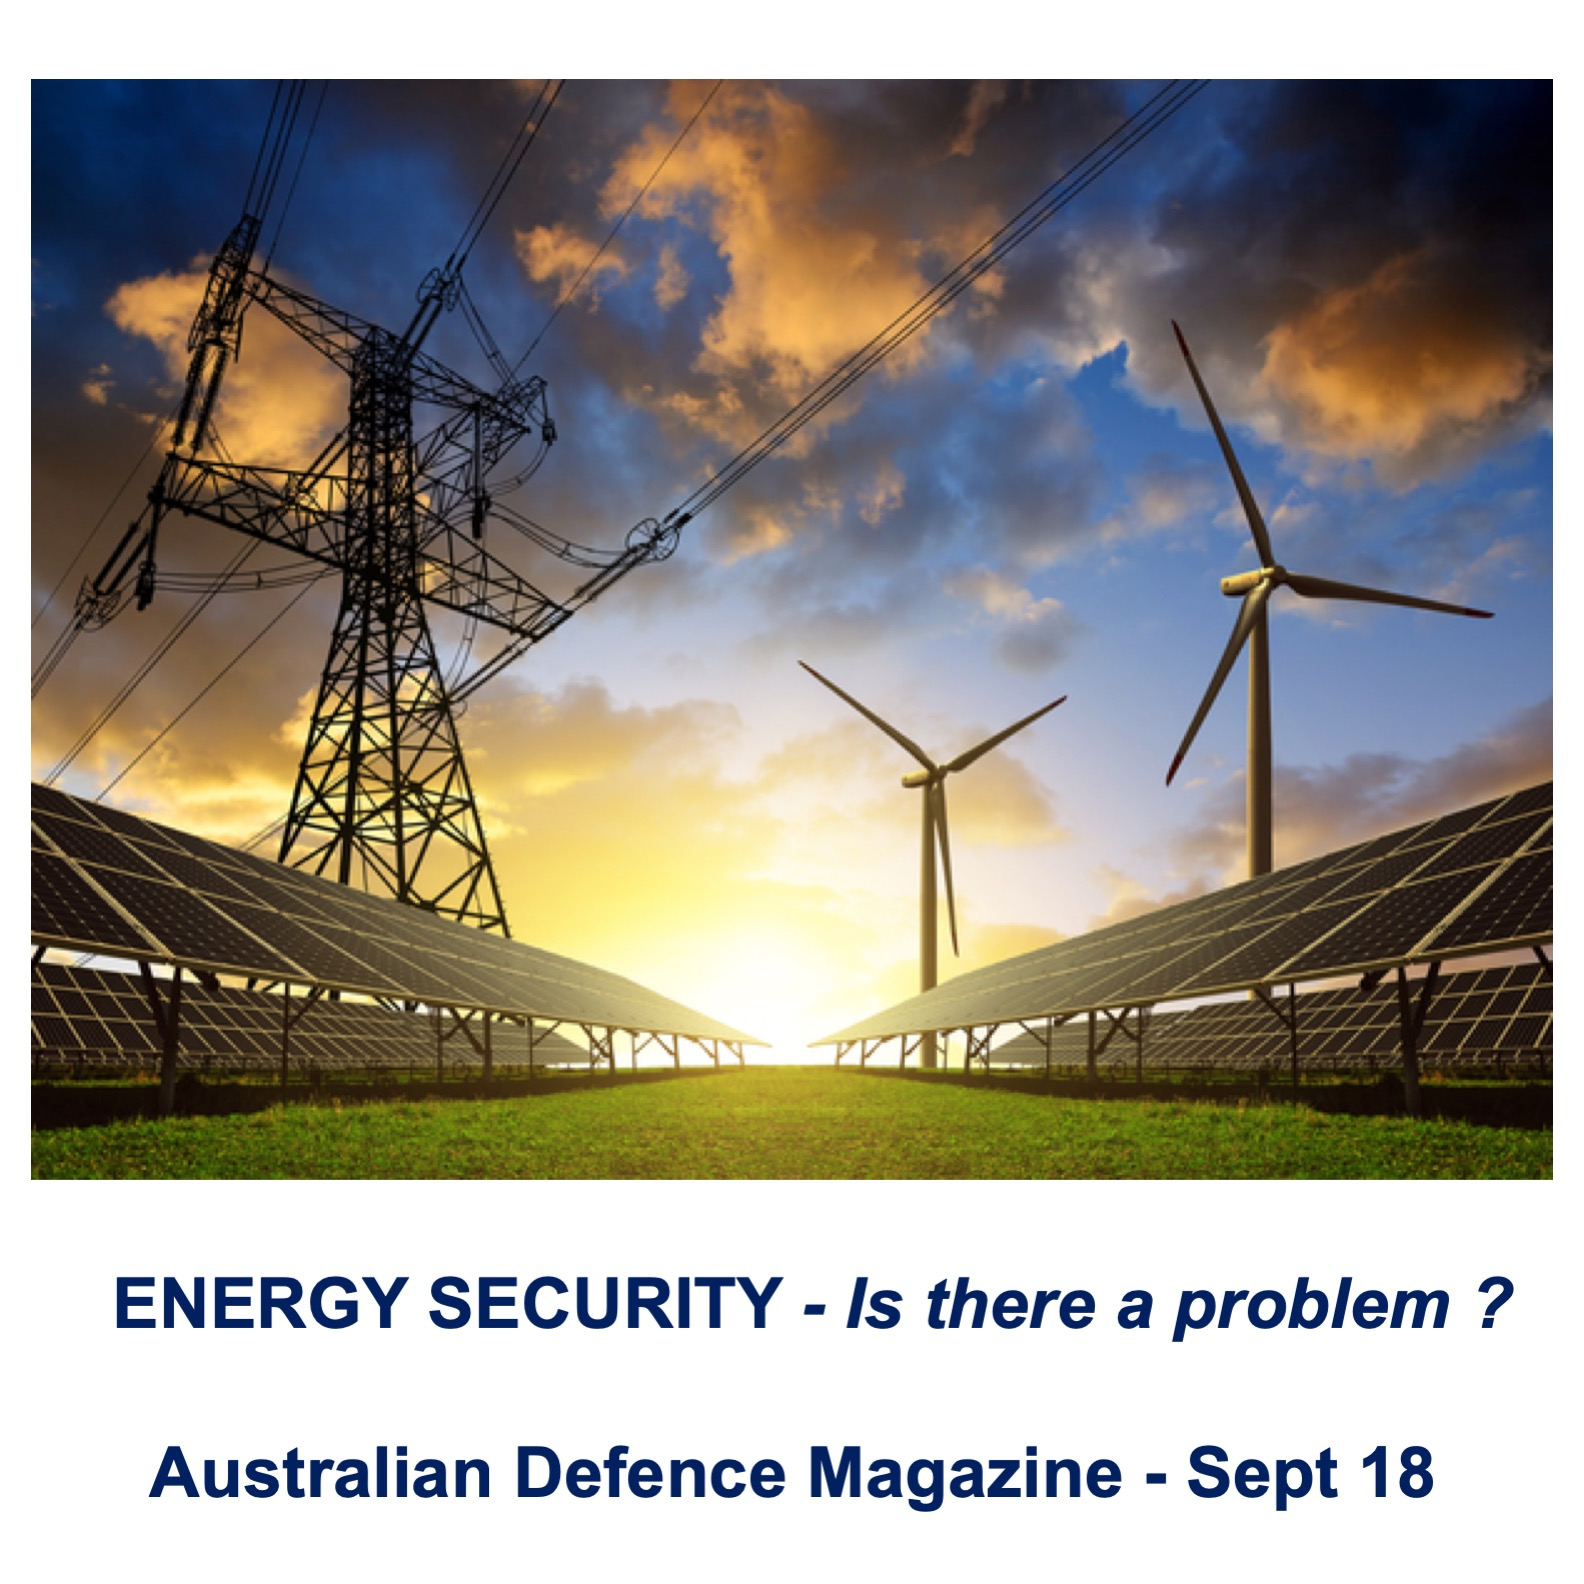 """Energy Security - is there a problem? - Published in the Australian Defence Magazine, September 2018.Unfortunately the topic of energy has become so politicised, both between the major parties and within the Liberal party, that the national interest has been subsumed by both party and personal interests. The reality is that energy security, like national security, can only be addressed with consistent bipartisan political support.Whilst Australia is endowed with natural resources, energy security risks across several sectors have increased. Despite this, the Government does not seem to think we have a problem. Unfortunately, energy security is about much more than just a more """"reliable"""" and cheaper electricity supply. It is about our security as a nation, it is about protecting our society and our way of life and, as such, it is a very complex issue.There are are significant issues with our energy systems that should concern us all; unfortunately, the analysis of our energy security and resilience is inadequate and the management of energy security has been outsourced to the market. The idea that we are at peace and """"business as usual"""" is the appropriate model where the markets can manage all aspects of our critical infrastructure and supply chains is clearly out of date.Energy security is a vital component of national security and an increased level of Government control / leadership with respect to energy security is warranted. The discussion of these issues is not just for our politicians; it is our collective responsibility to discuss these issues and to tell our politicians what we need to have done and not wait to just complain after our energy systems fail. We need a National Security Strategy that integrates all aspects of national power. An energy security plan should be an integral part of such a strategy.DOWNLOAD THE ENERGY SECURITY ARTICLE"""